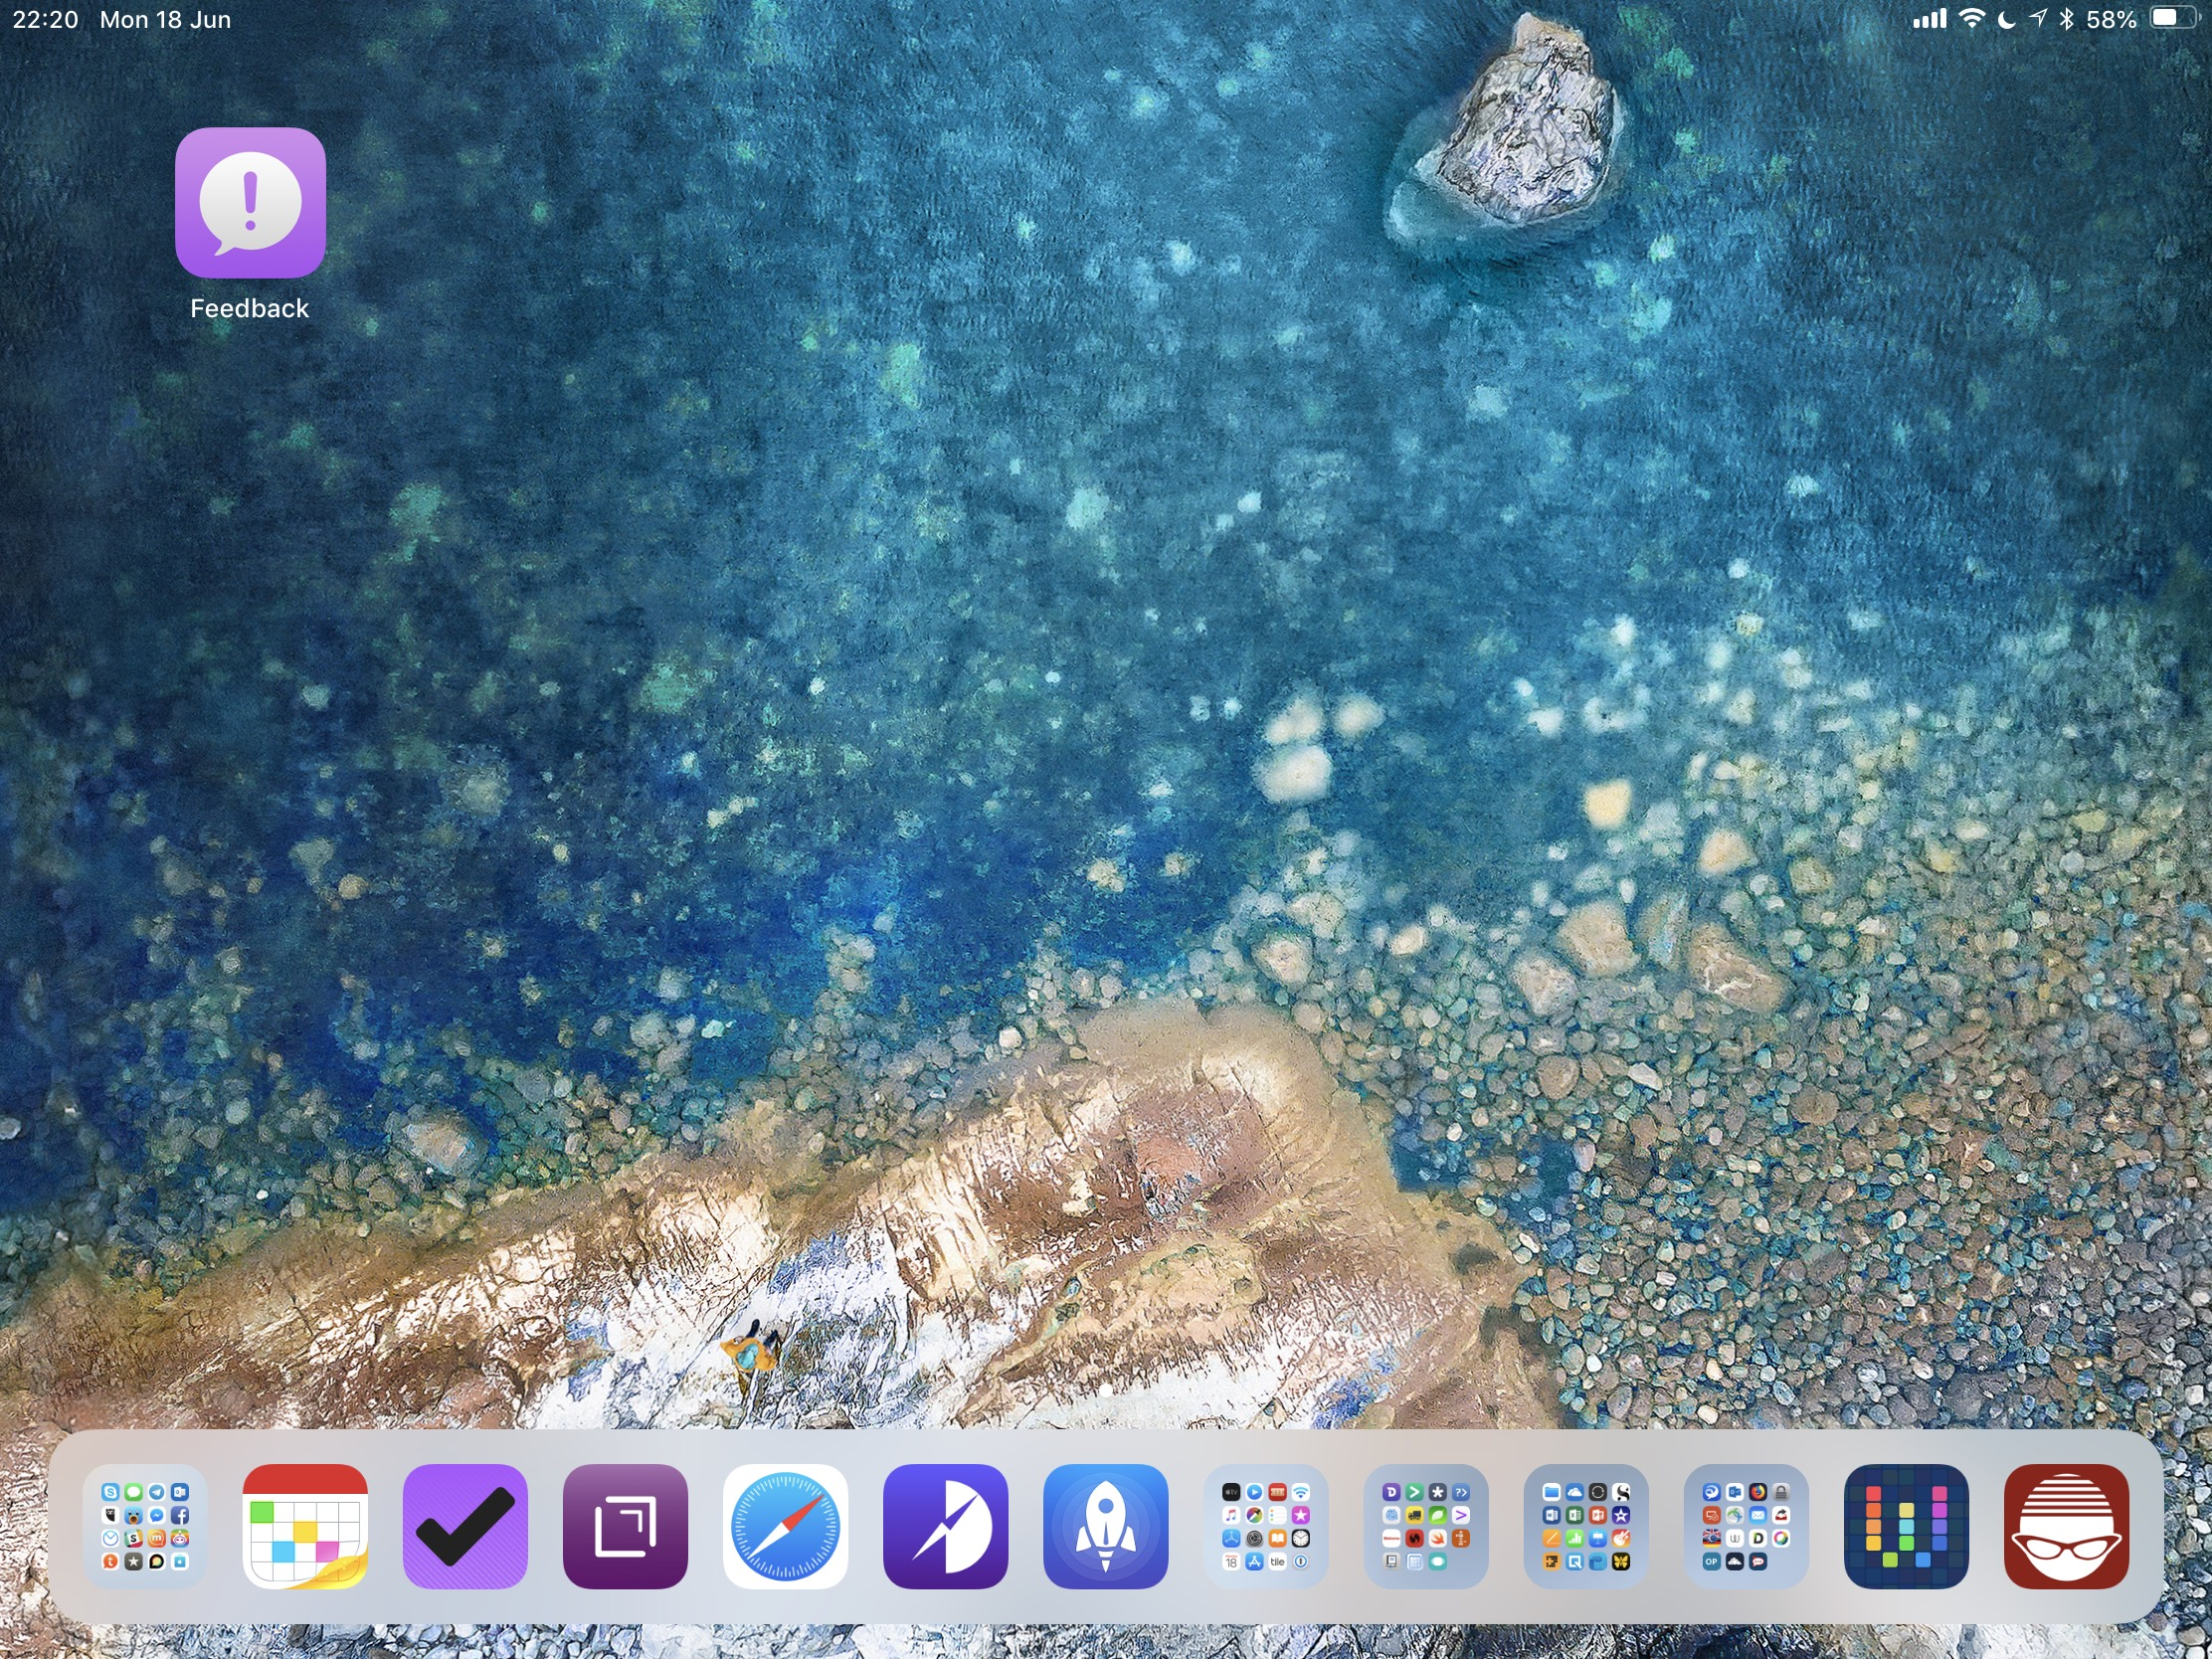 Homescreen with blue beach background, feedback icon top right, and all other apps in the dock